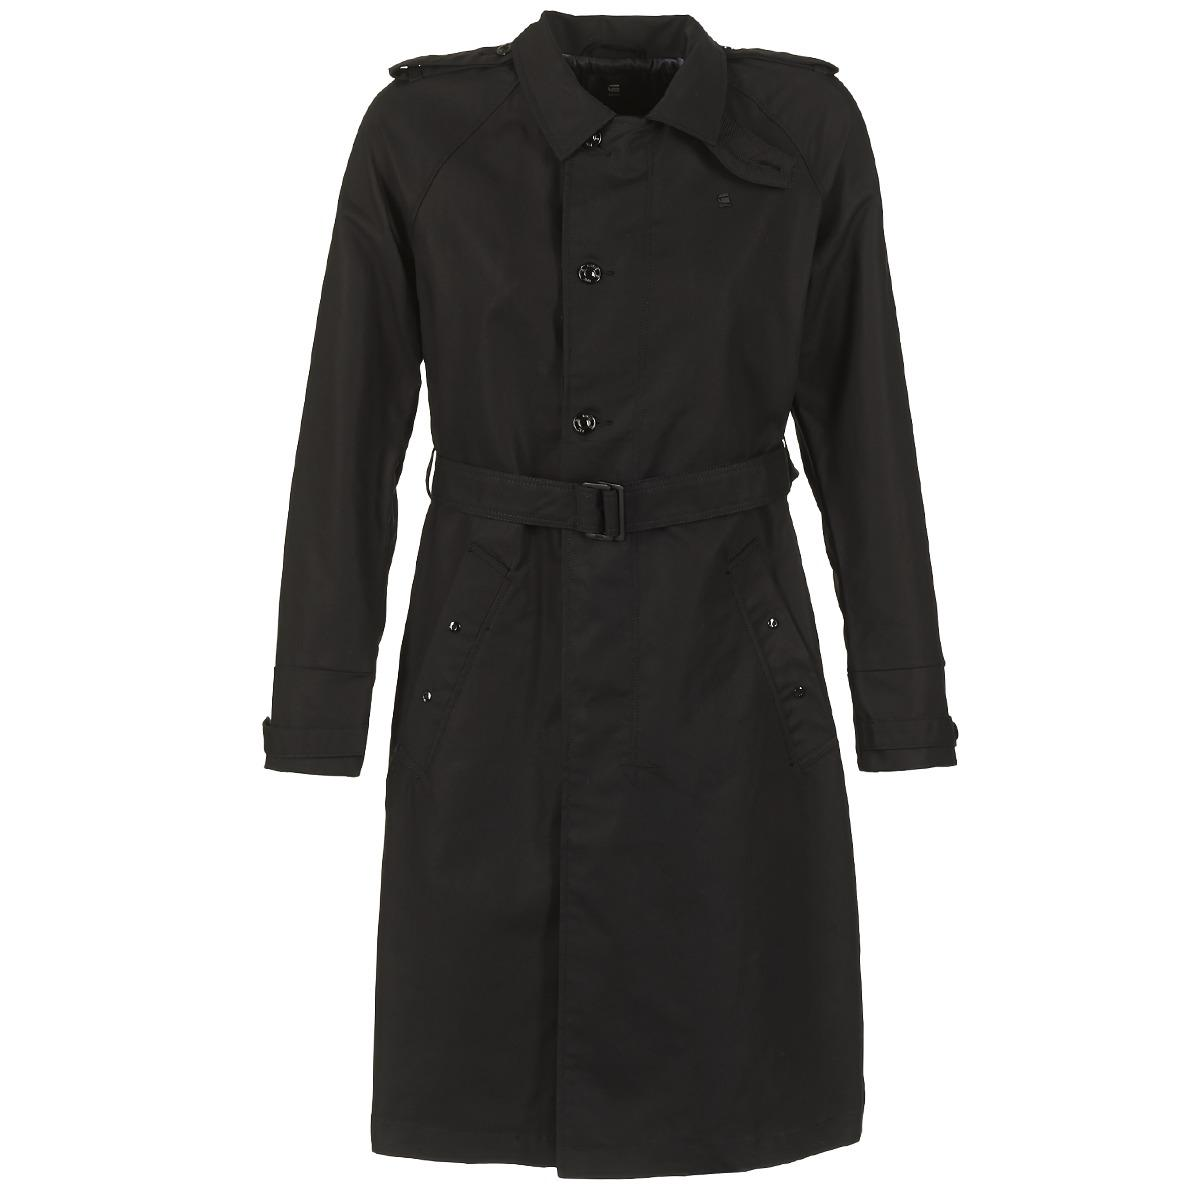 7be7c01d9 G-Star RAW Minor Relax Trench Coat Womens Jackets